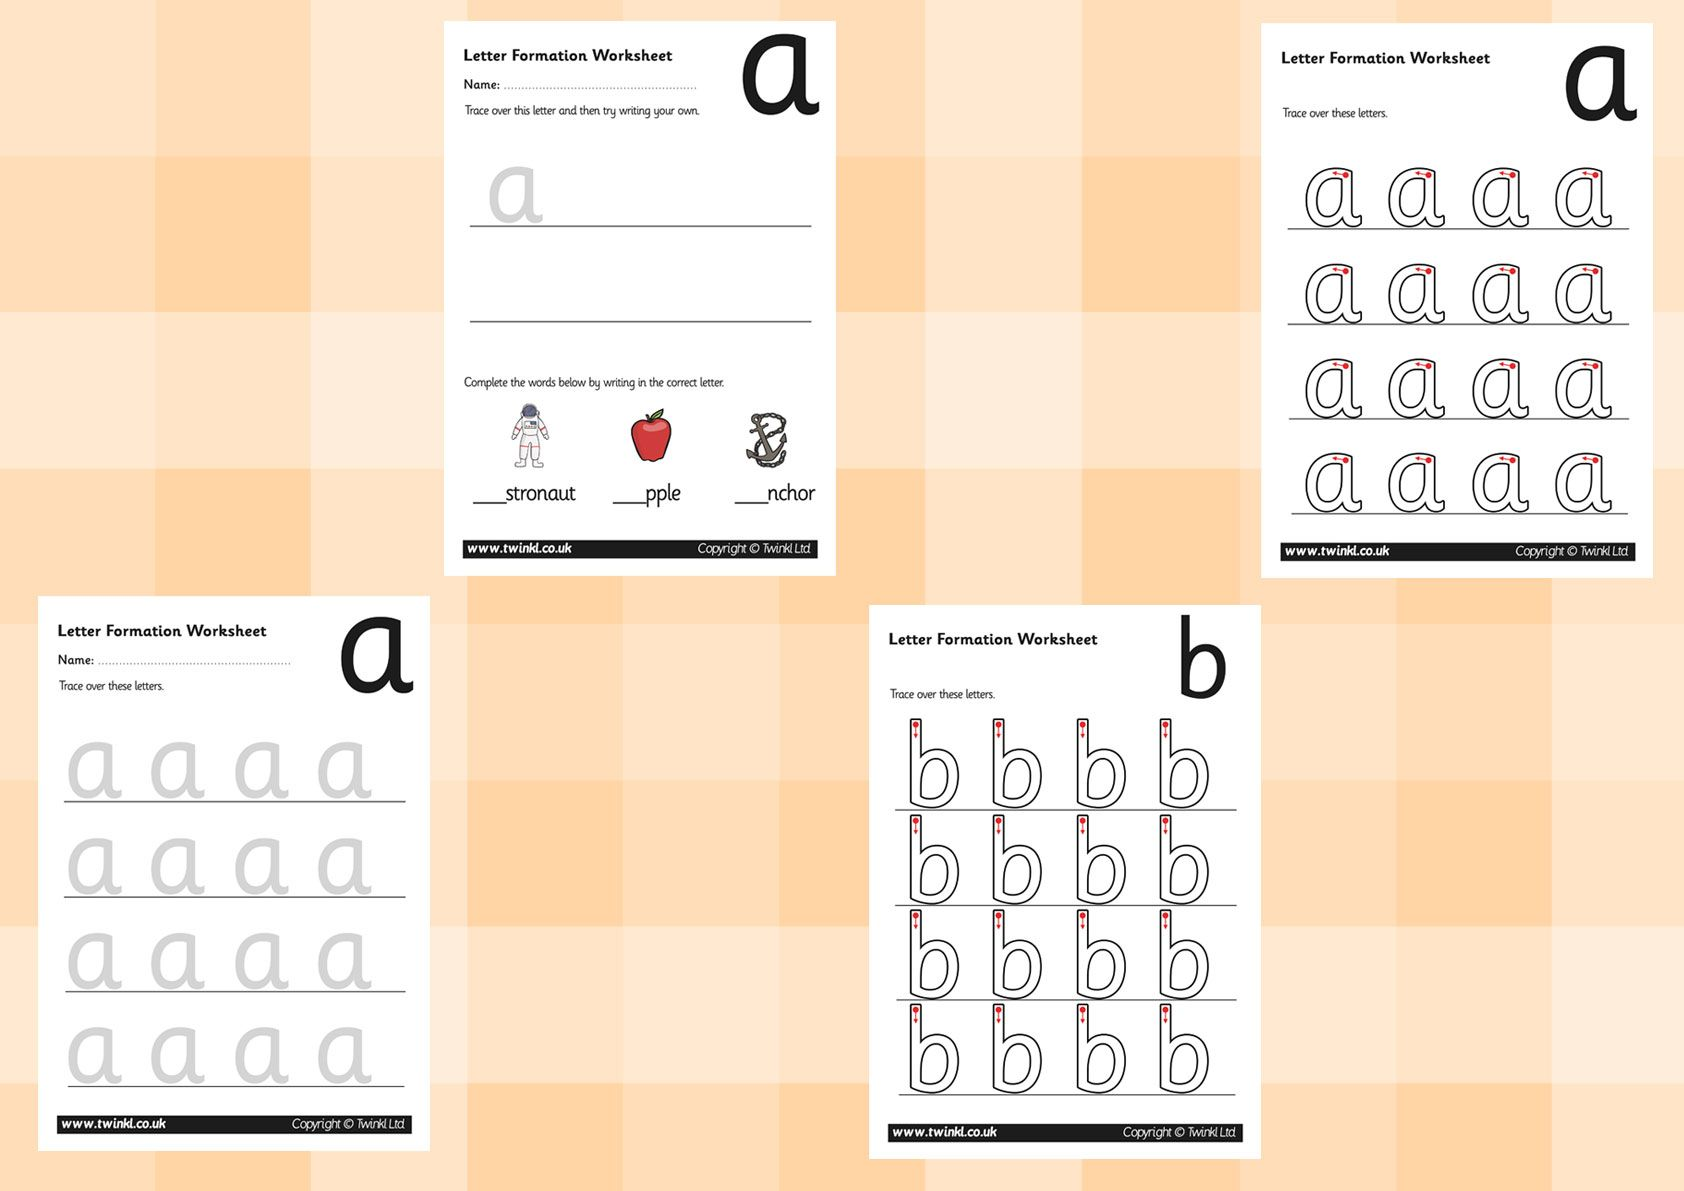 Twinkl Resources A Z Letter Formation Worksheets Printable Resources For Eyfs Ks1 And Sen Classro Letter Formation Worksheets Letter Formation Lettering